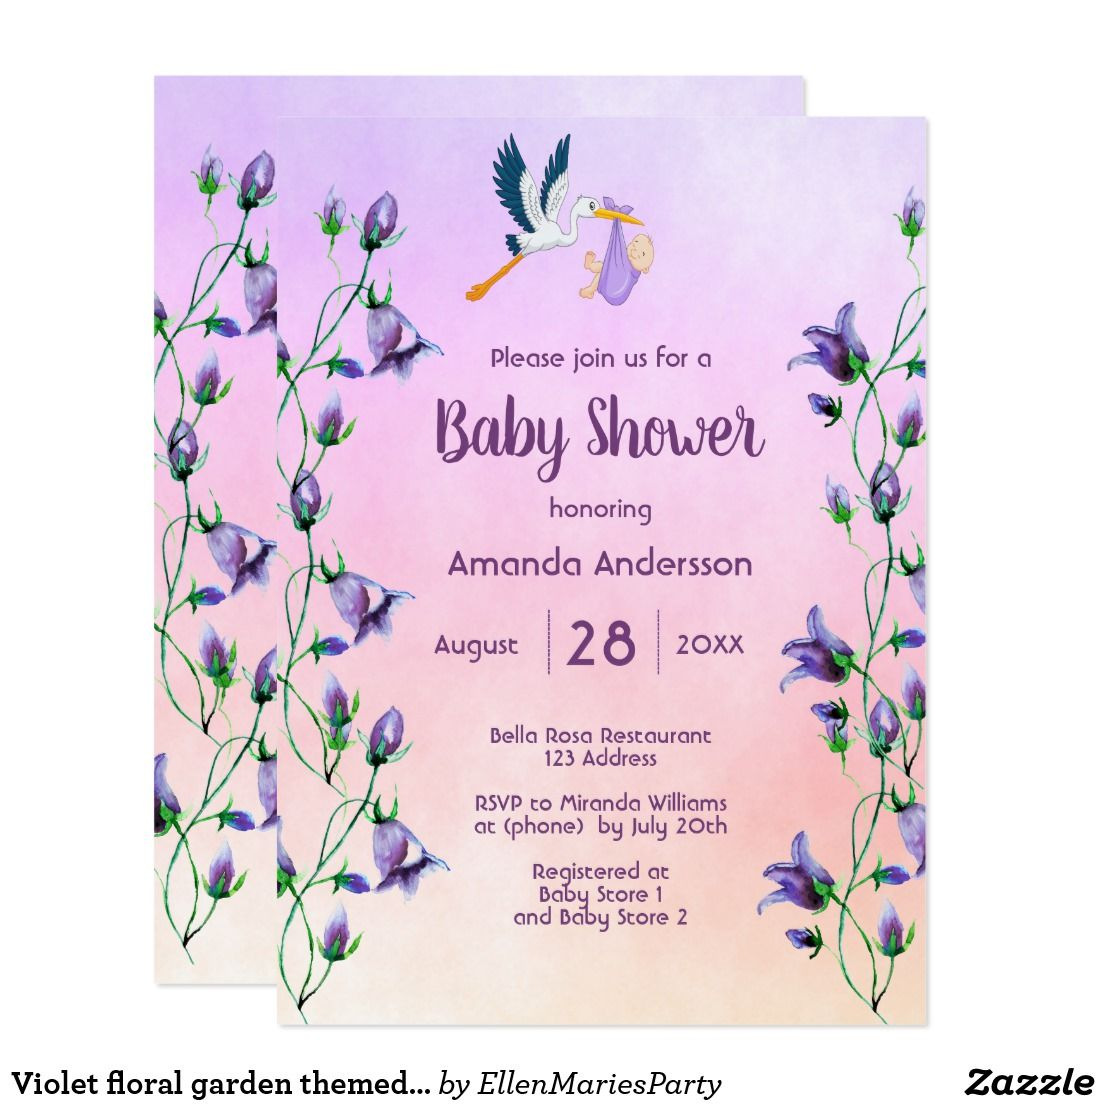 Baby Shower Invitation Letter Prepossessing Violet Floral Garden Themed Baby Shower Invitation  Babies And Baby .